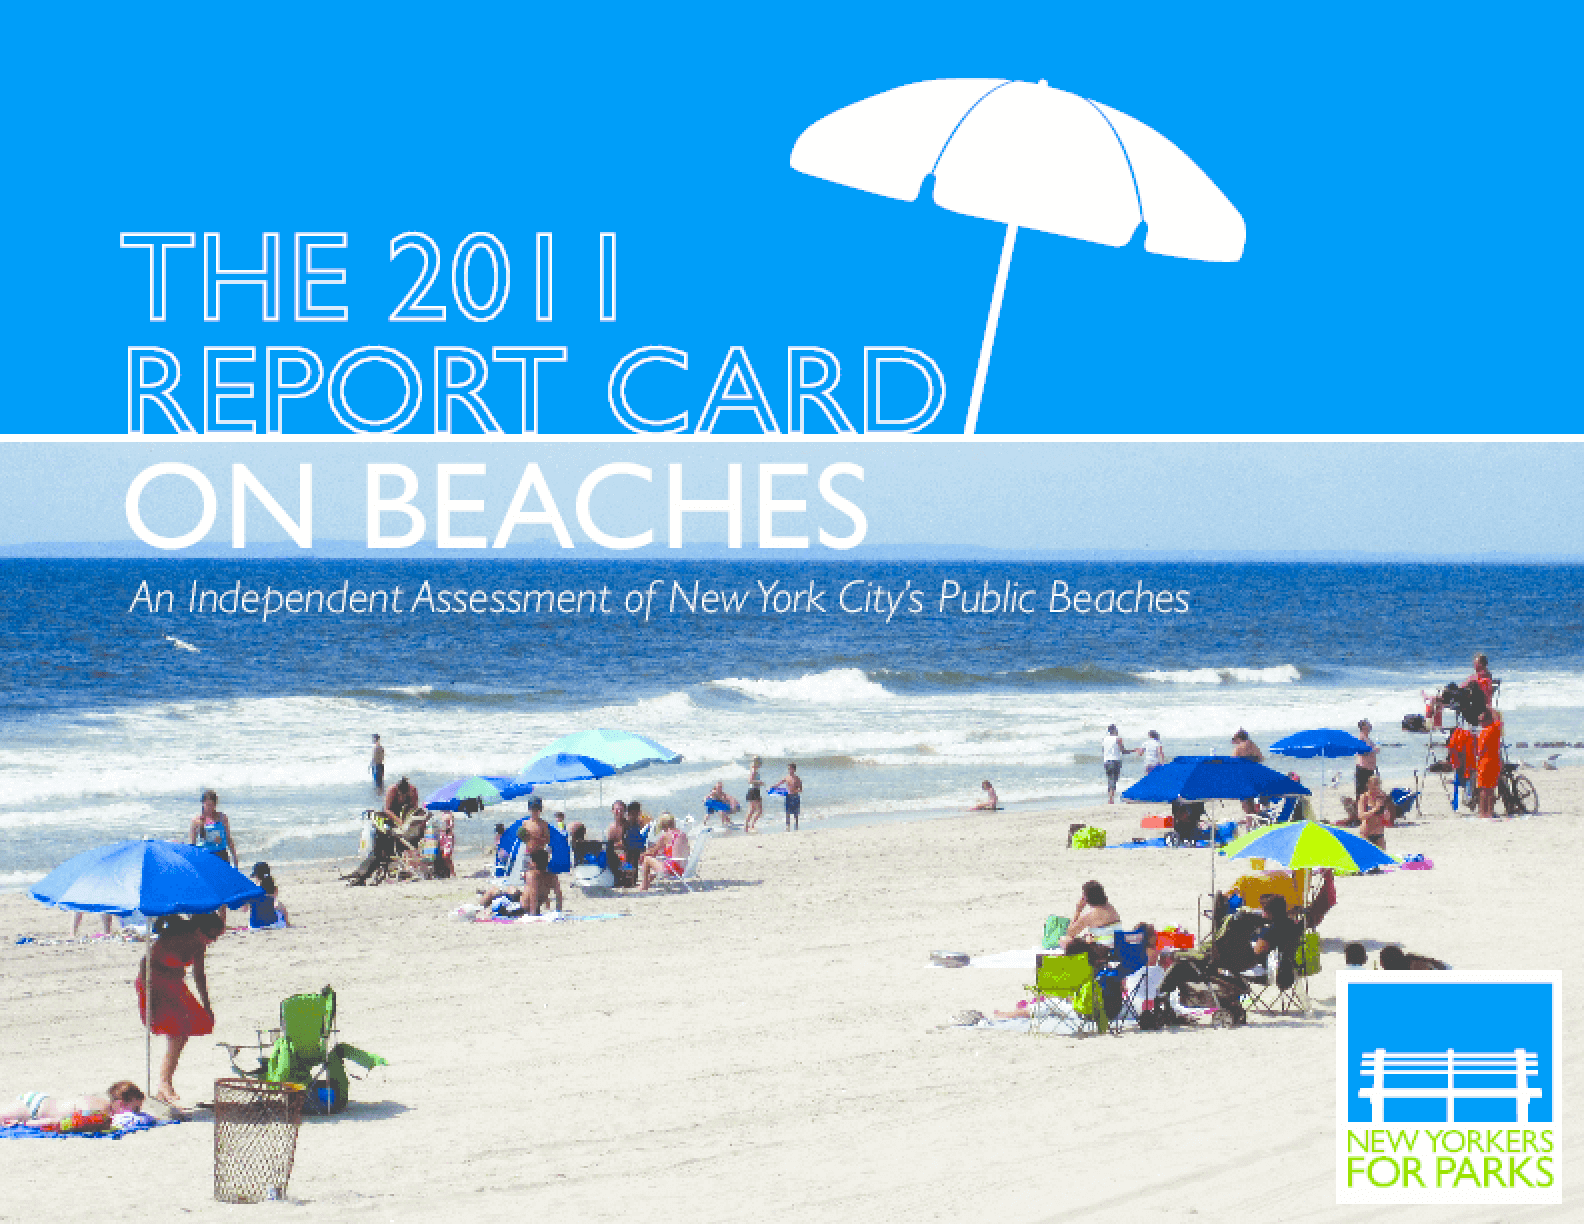 2011 Report Card on Beaches: An Independent Assessment of New York City's Public Beaches